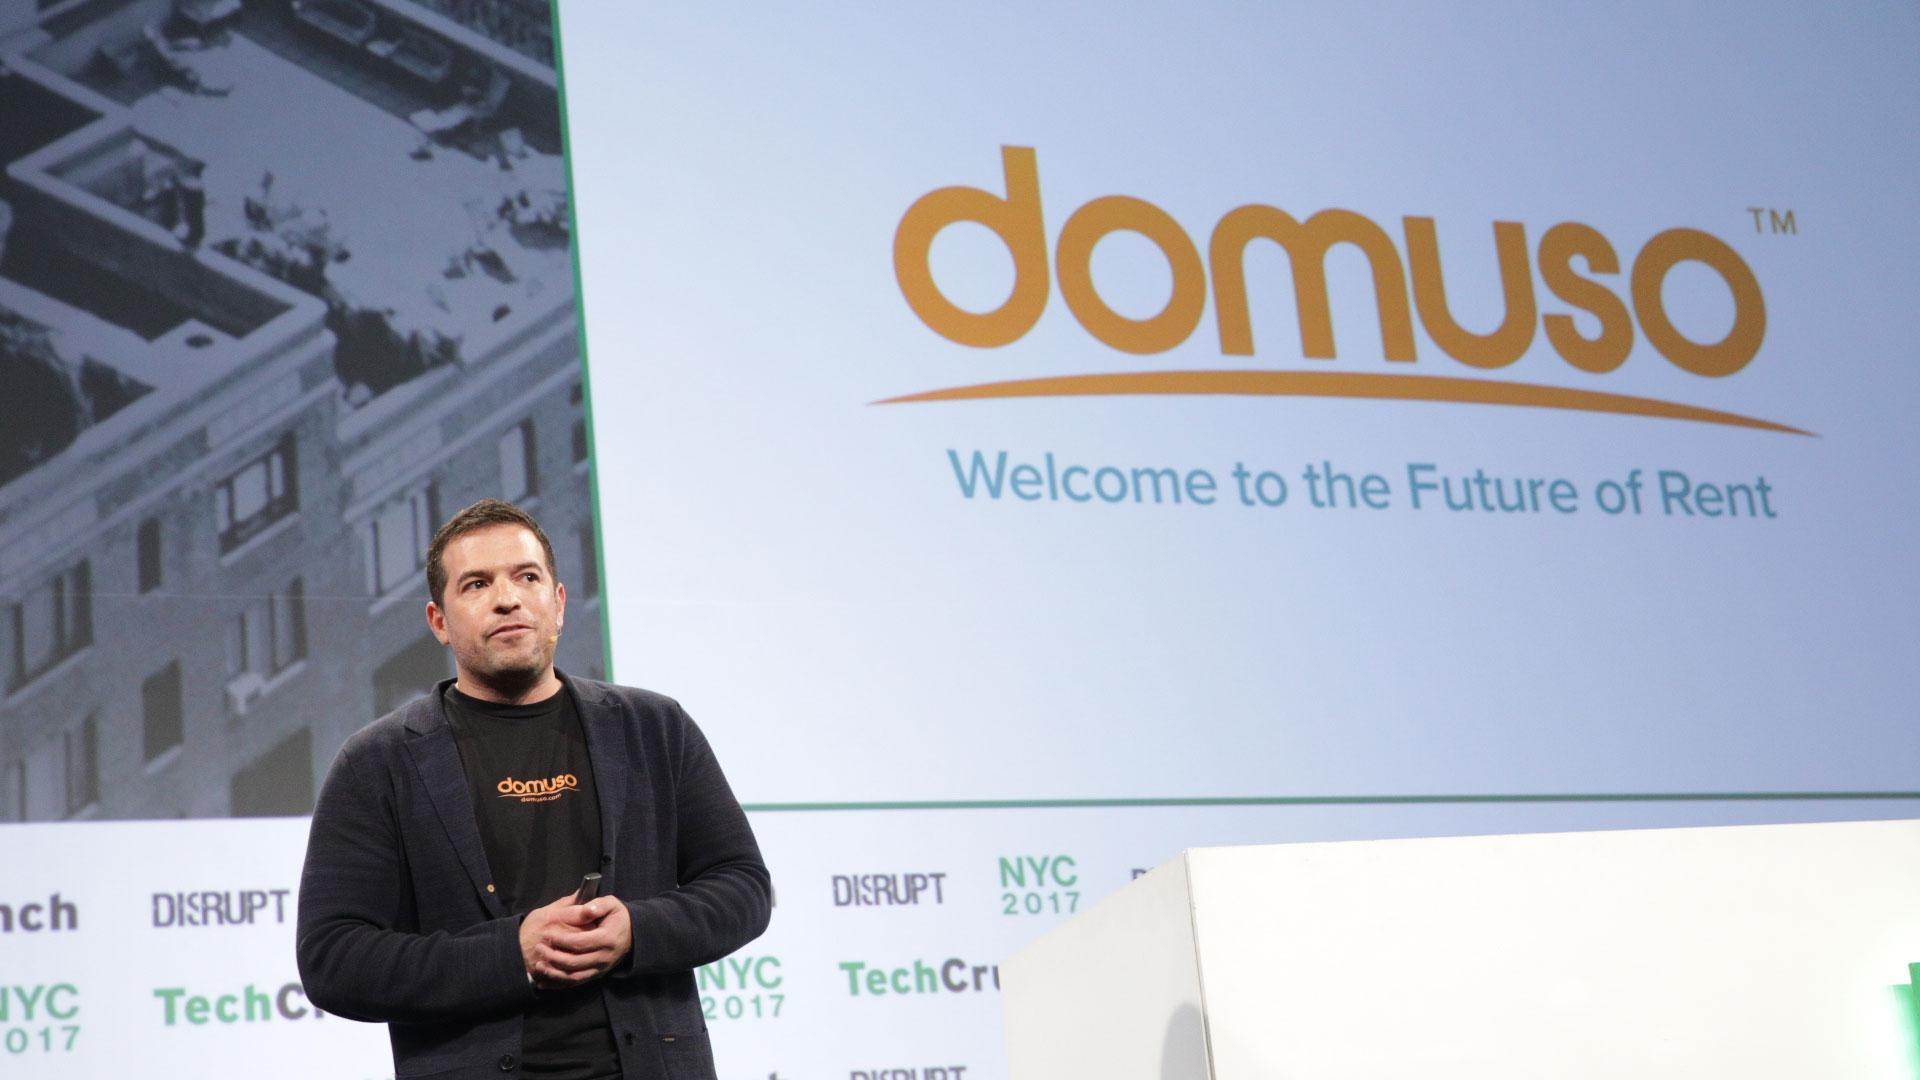 Domuso: Flexible Rent Payment Now